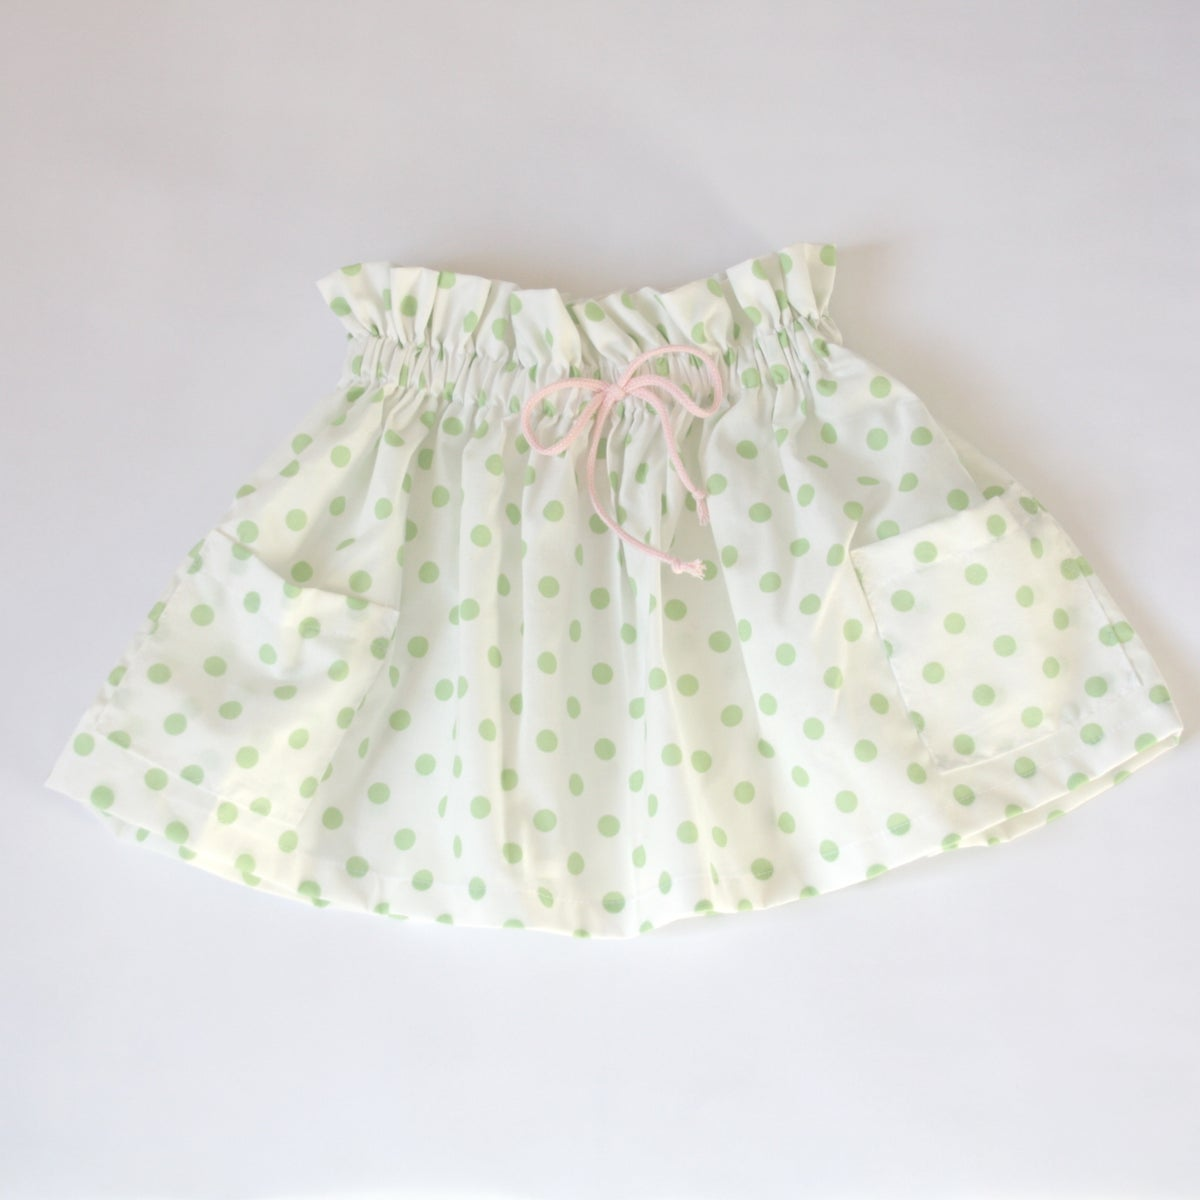 Market Skirt - white with green or rose dots